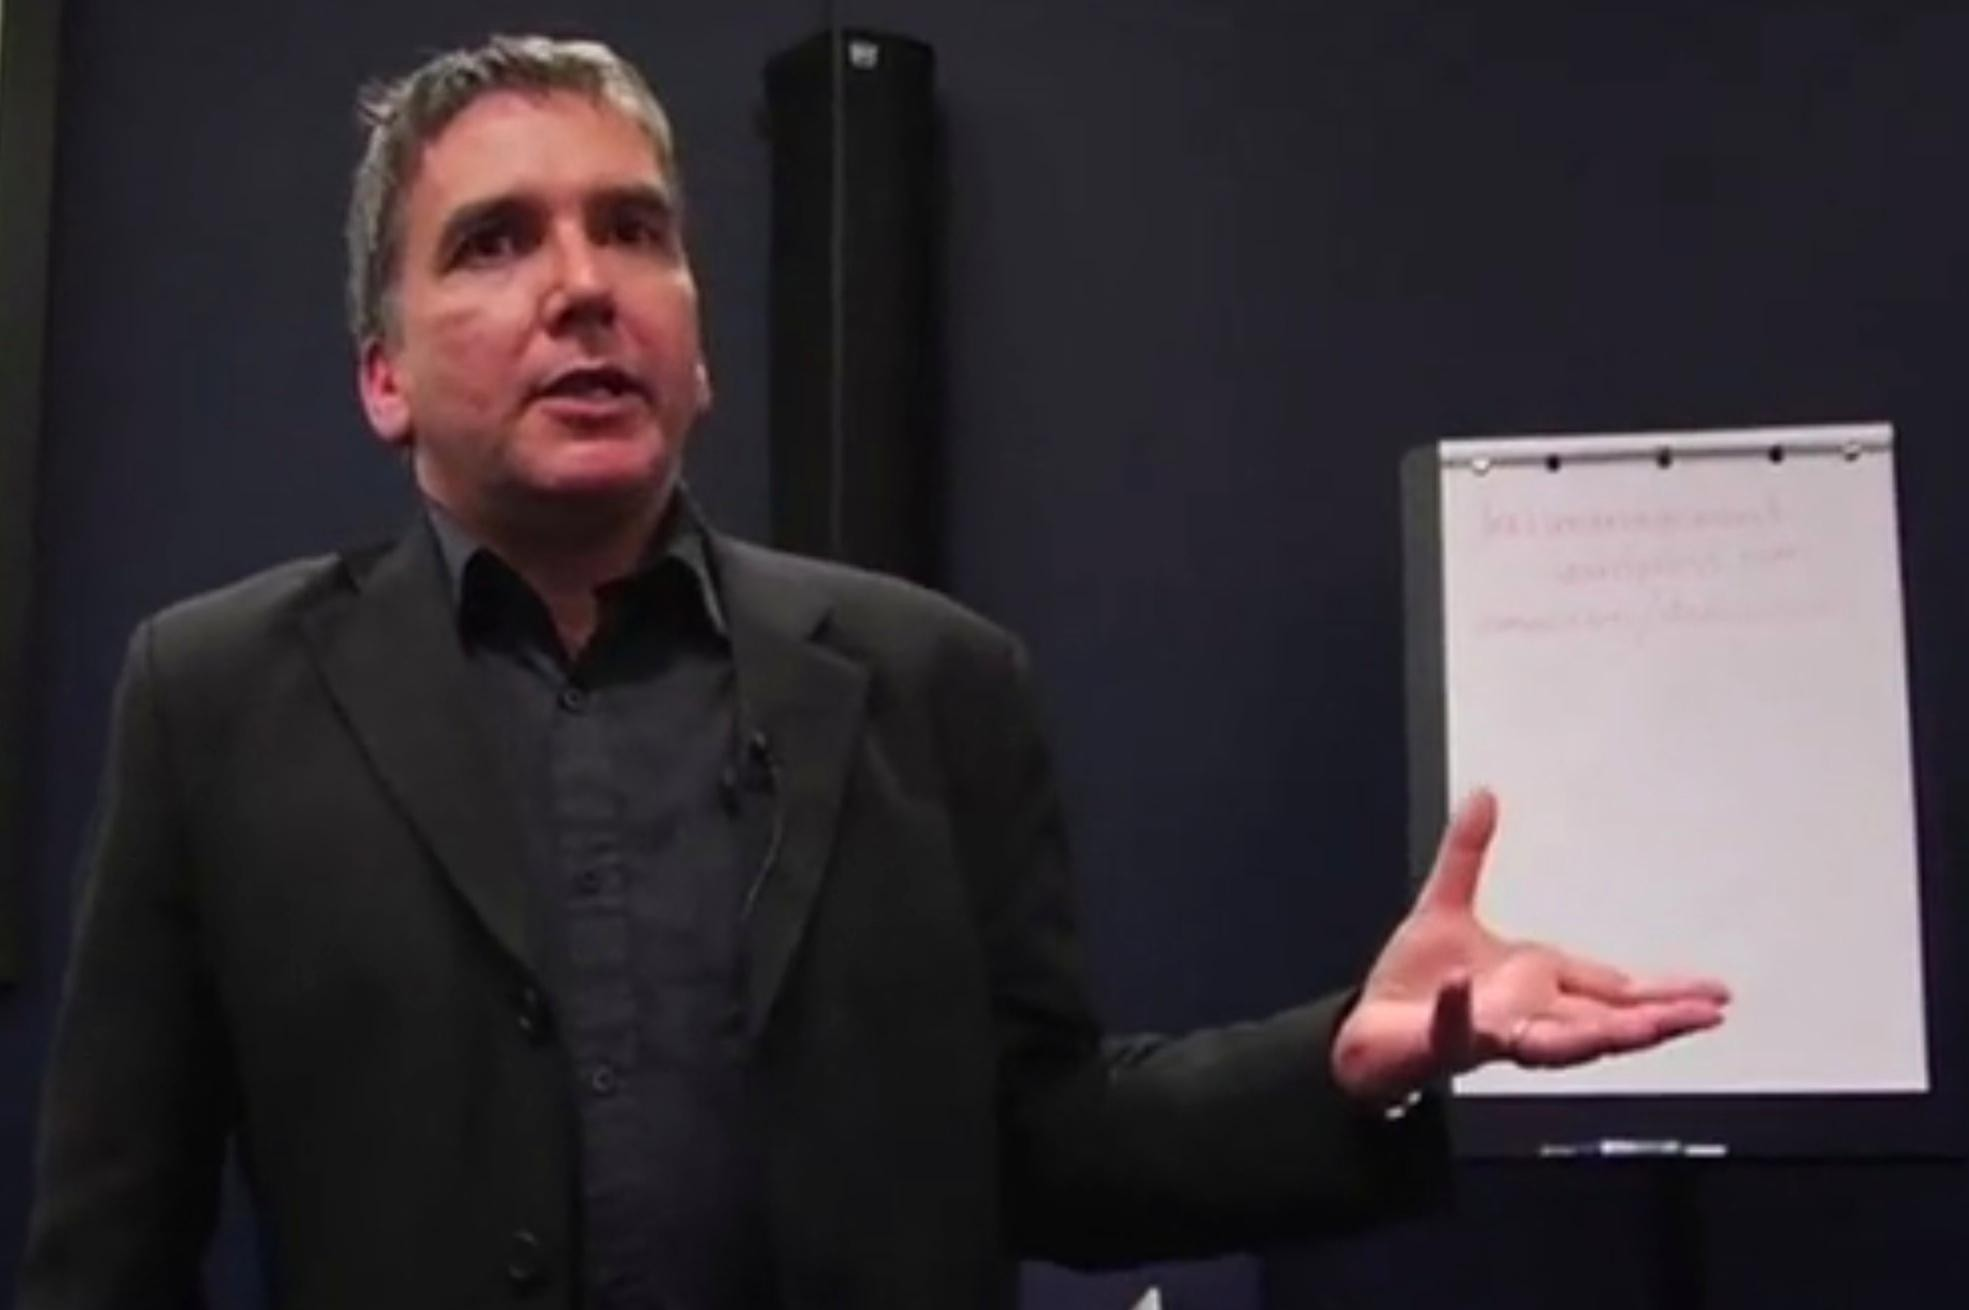 Mark Fisher's K-punk blogs were required reading for a generation